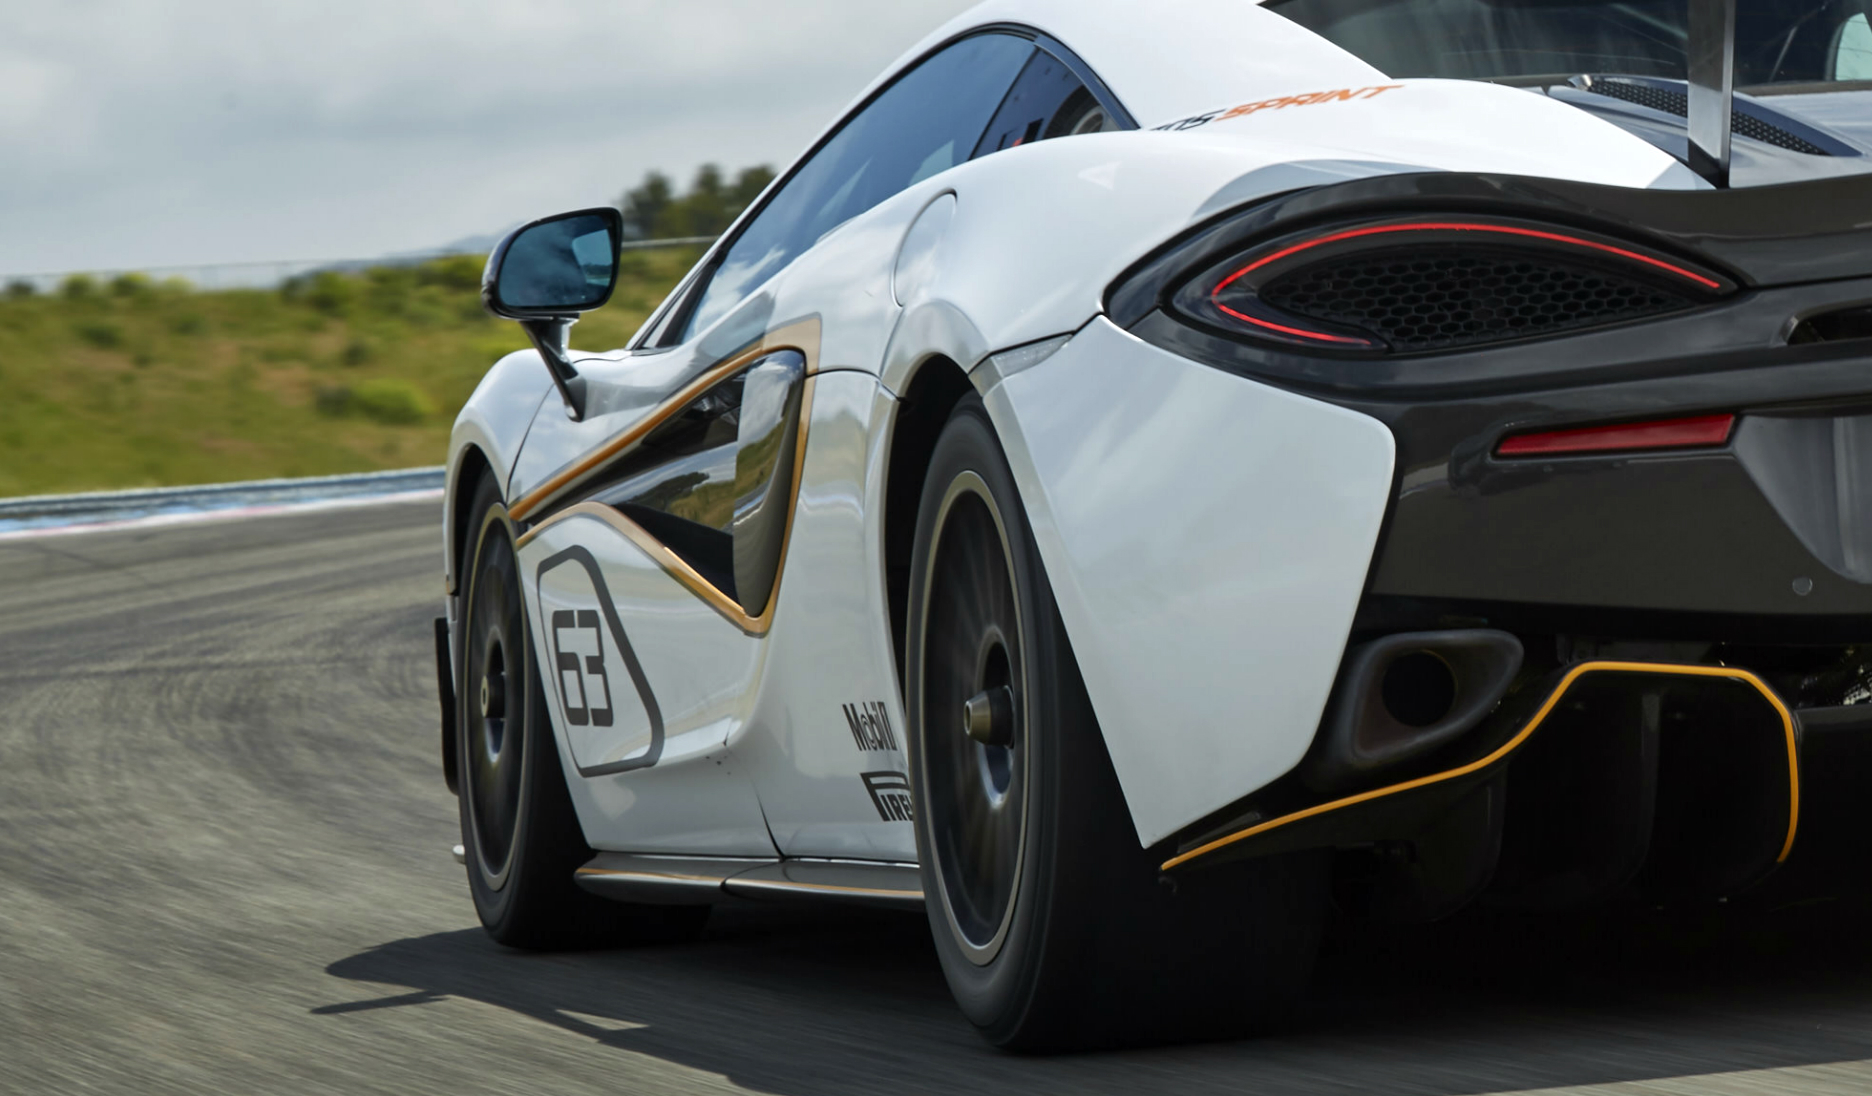 McLaren 570S Sprint - rear side